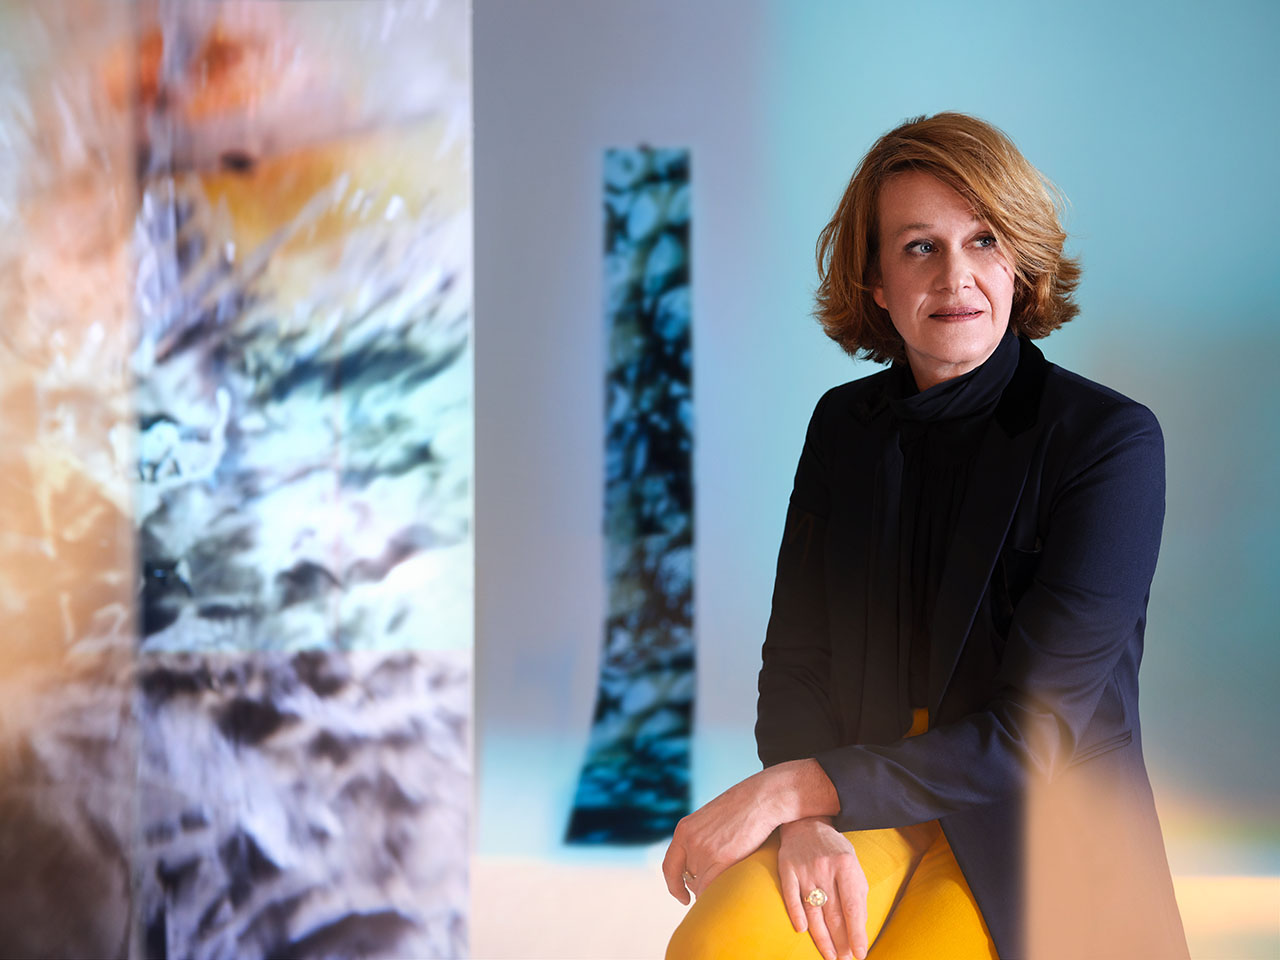 These unexpected pictures of Annette Baumeister represent her and showcase personal objects like processed fabrics, exceptional ceramics, wood prints, iridescent shells and marbled stones, which are important sources of inspiration for her work.She immerses herself in her very personal worlds of color and material in the resulting motifs. The picture series was created in collaboration with the Munich based photographer Sacha Tassilo Höchstetter.